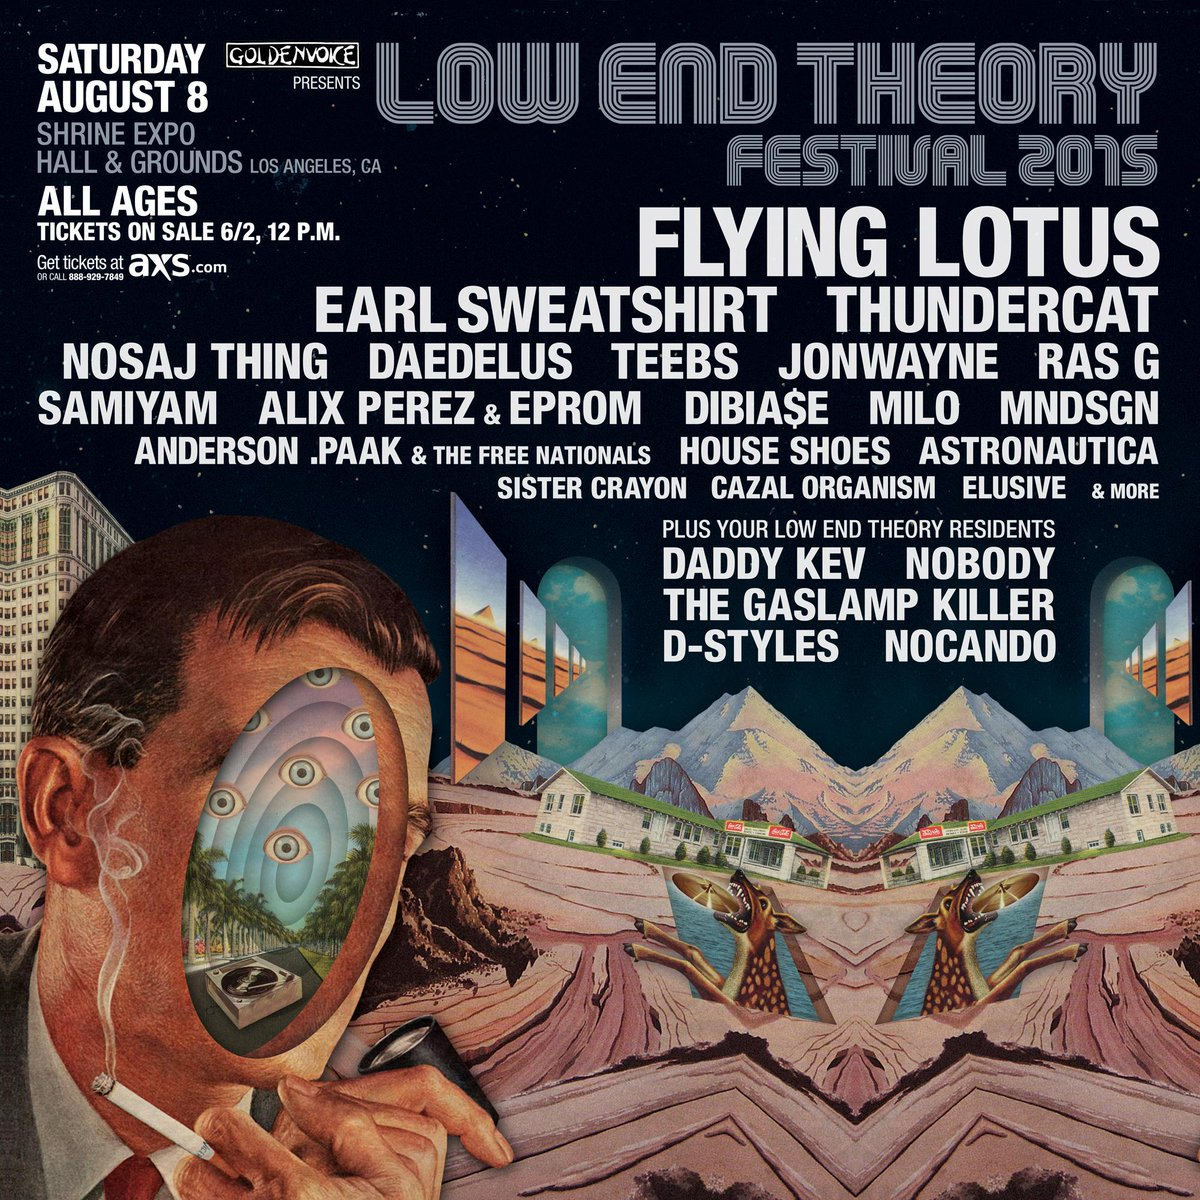 8/08: @Goldenvoice presents Low End Theory Festival 2015 at @ShrineLA. Tickets on sale mañana 6/2 at 12:00 p.m. http://t.co/R2lUrVoadl